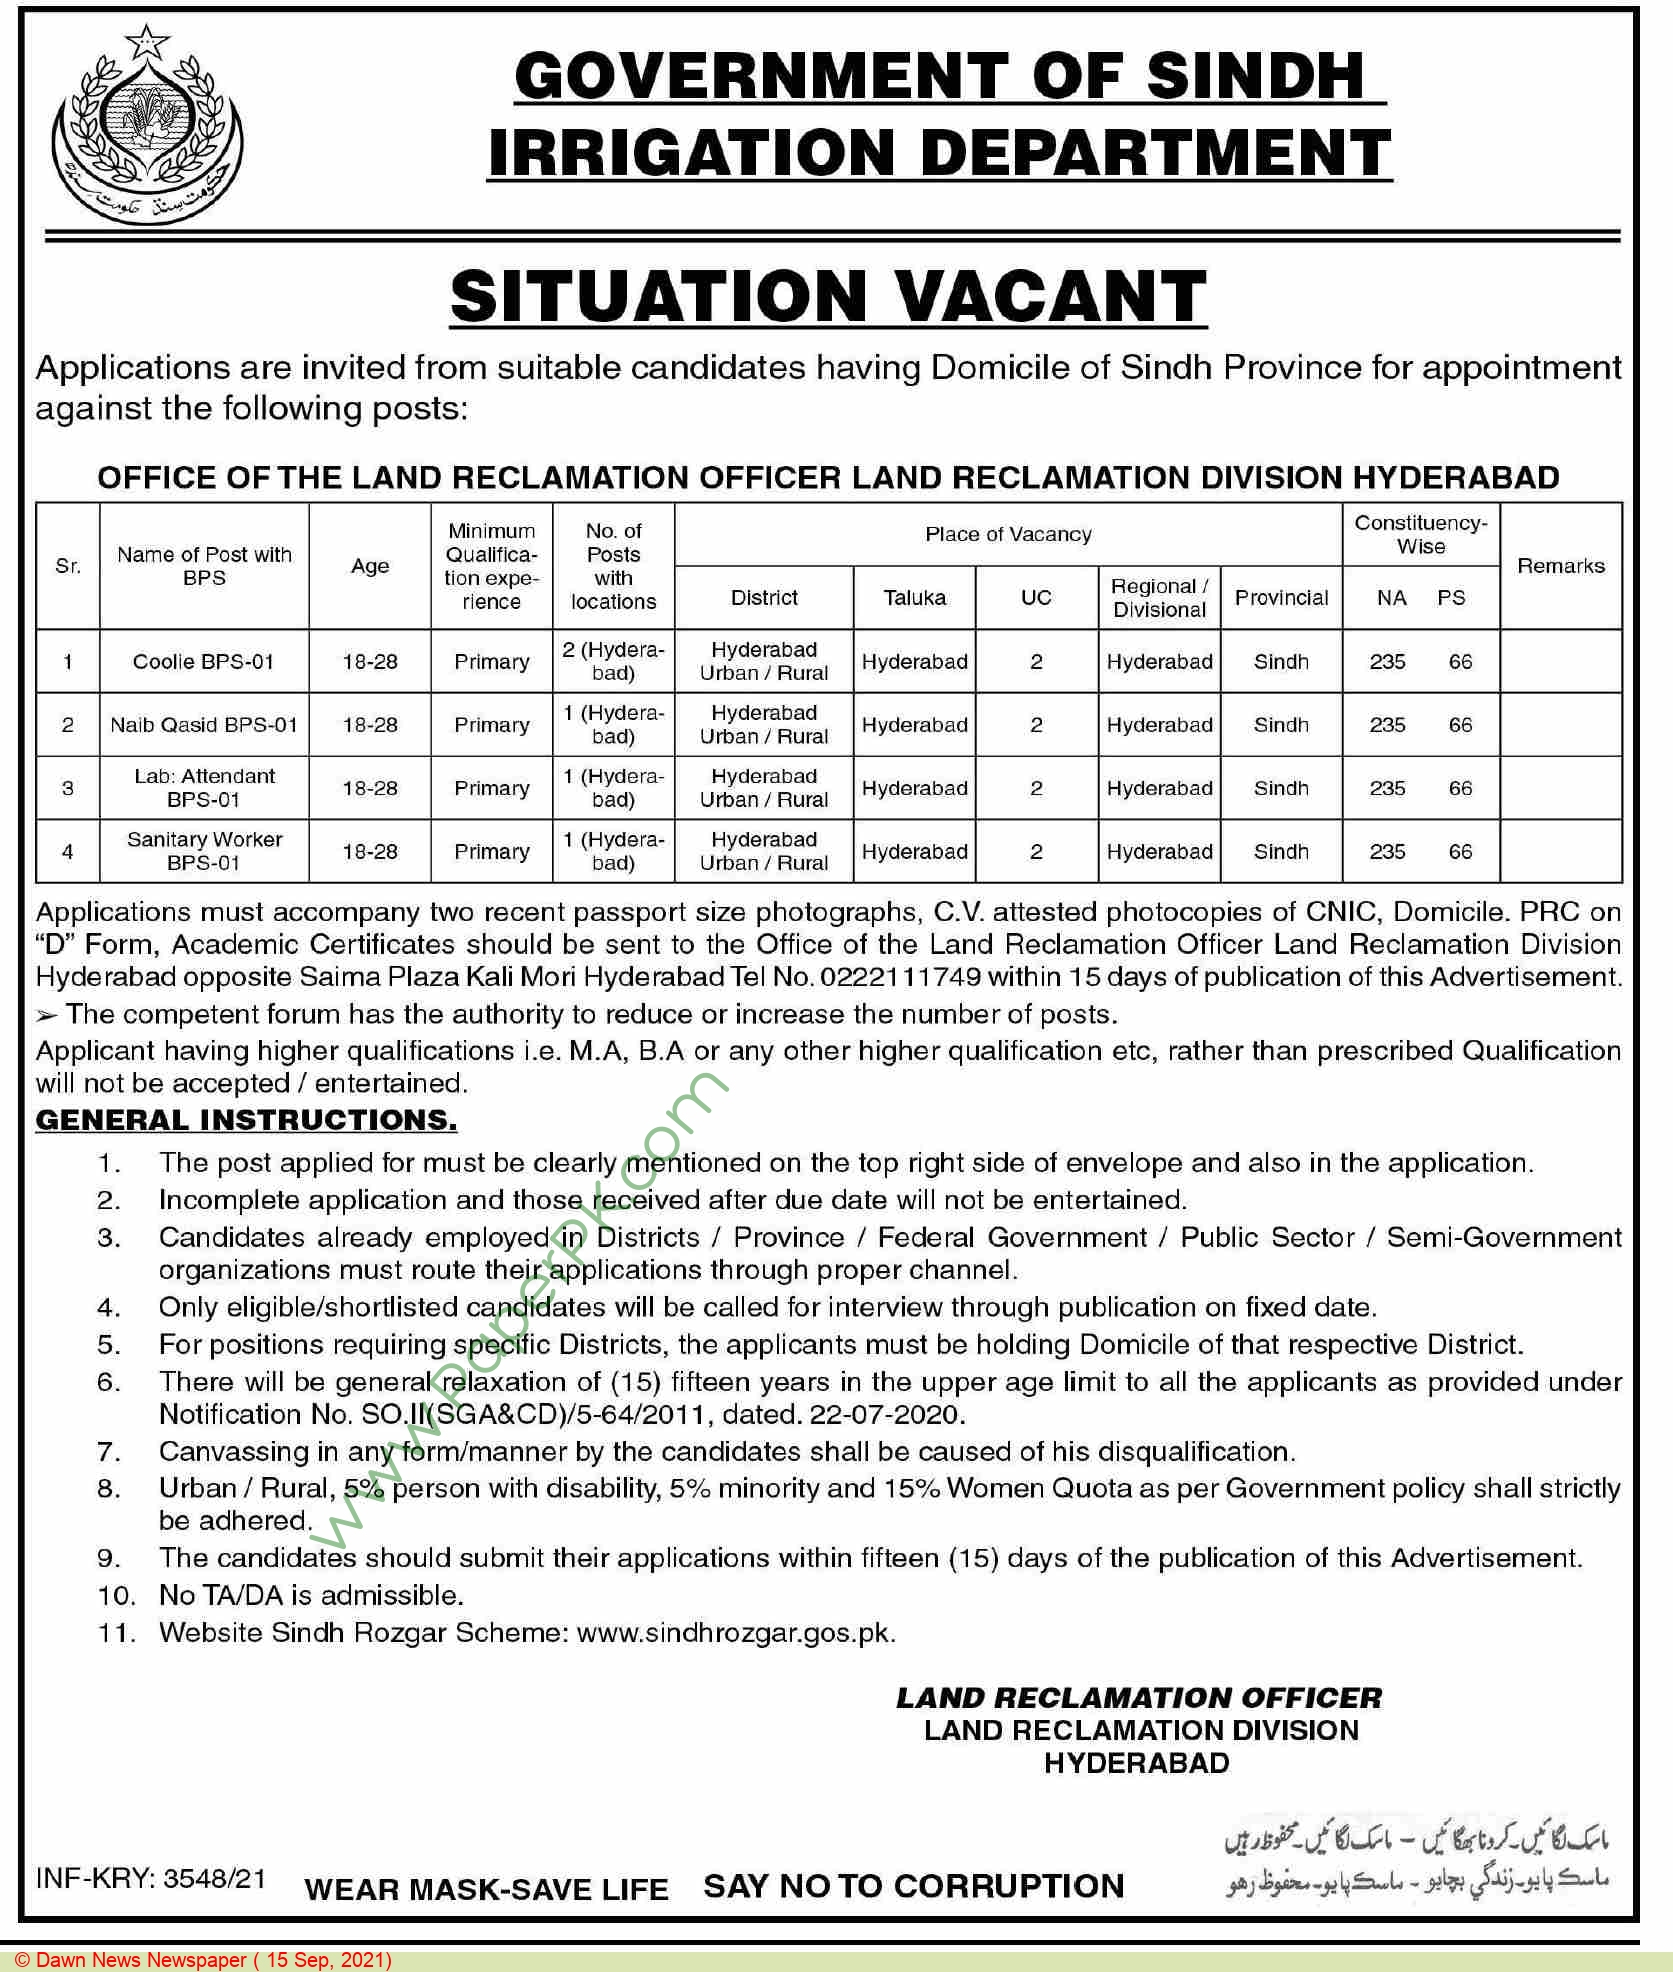 Irrigation Department jobs newspaper ad for Naib Qasid in Hyderabad on 2021-09-15